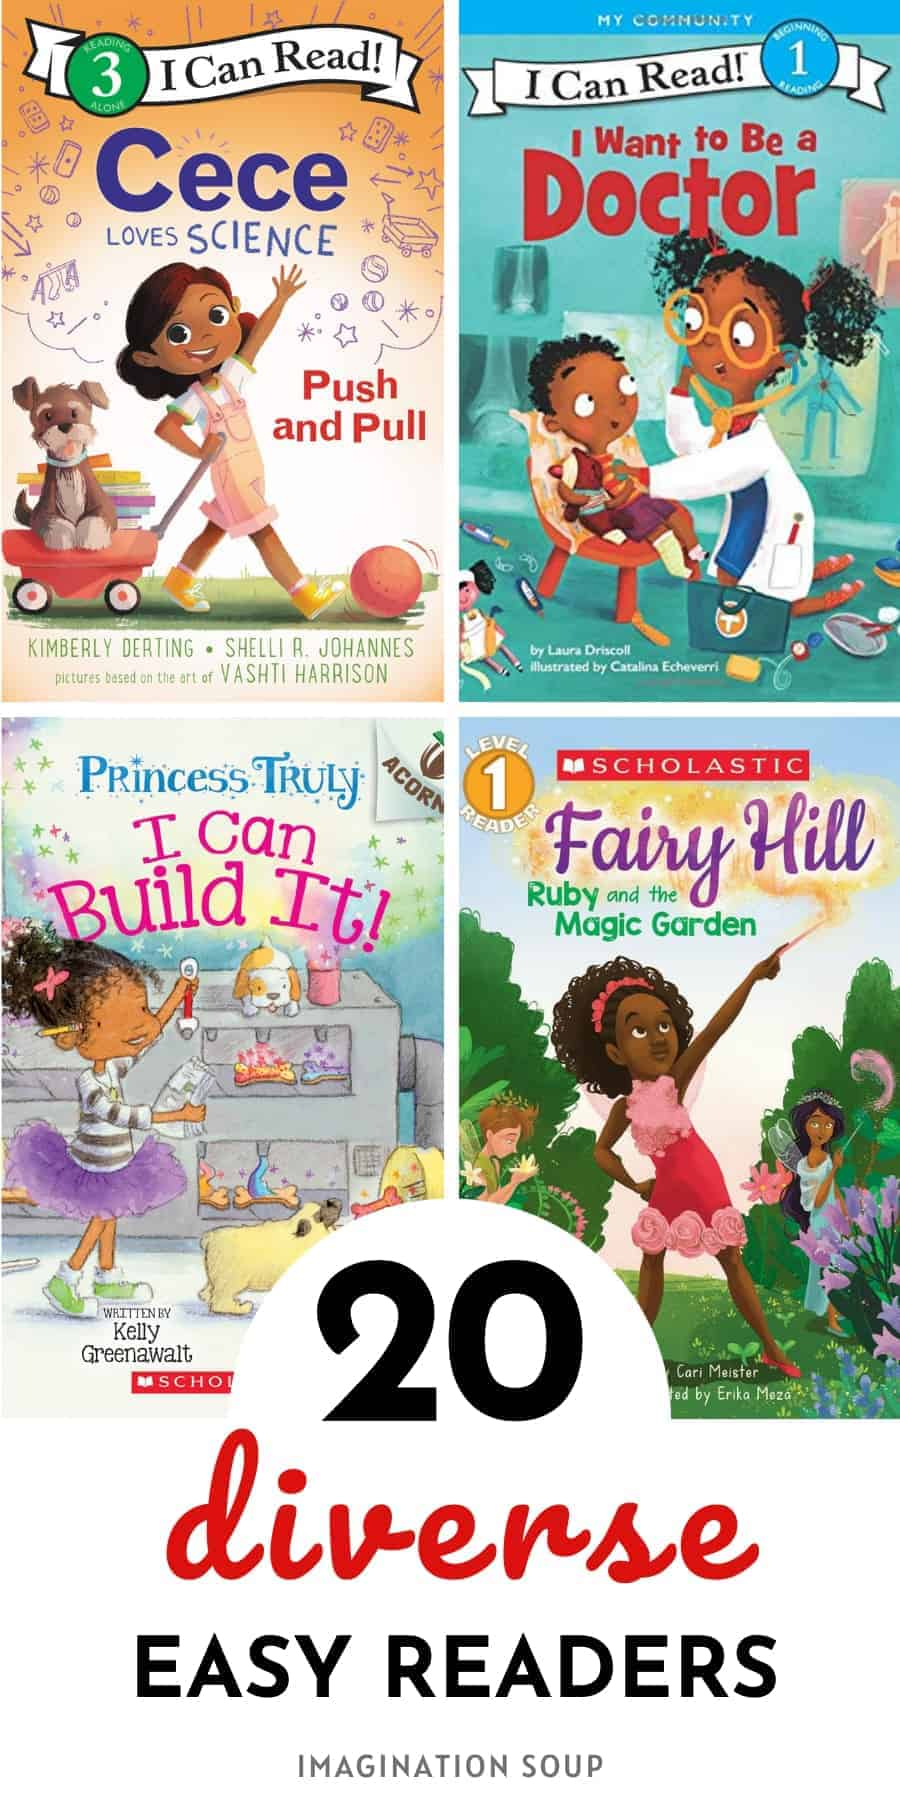 20 diverse easy readers